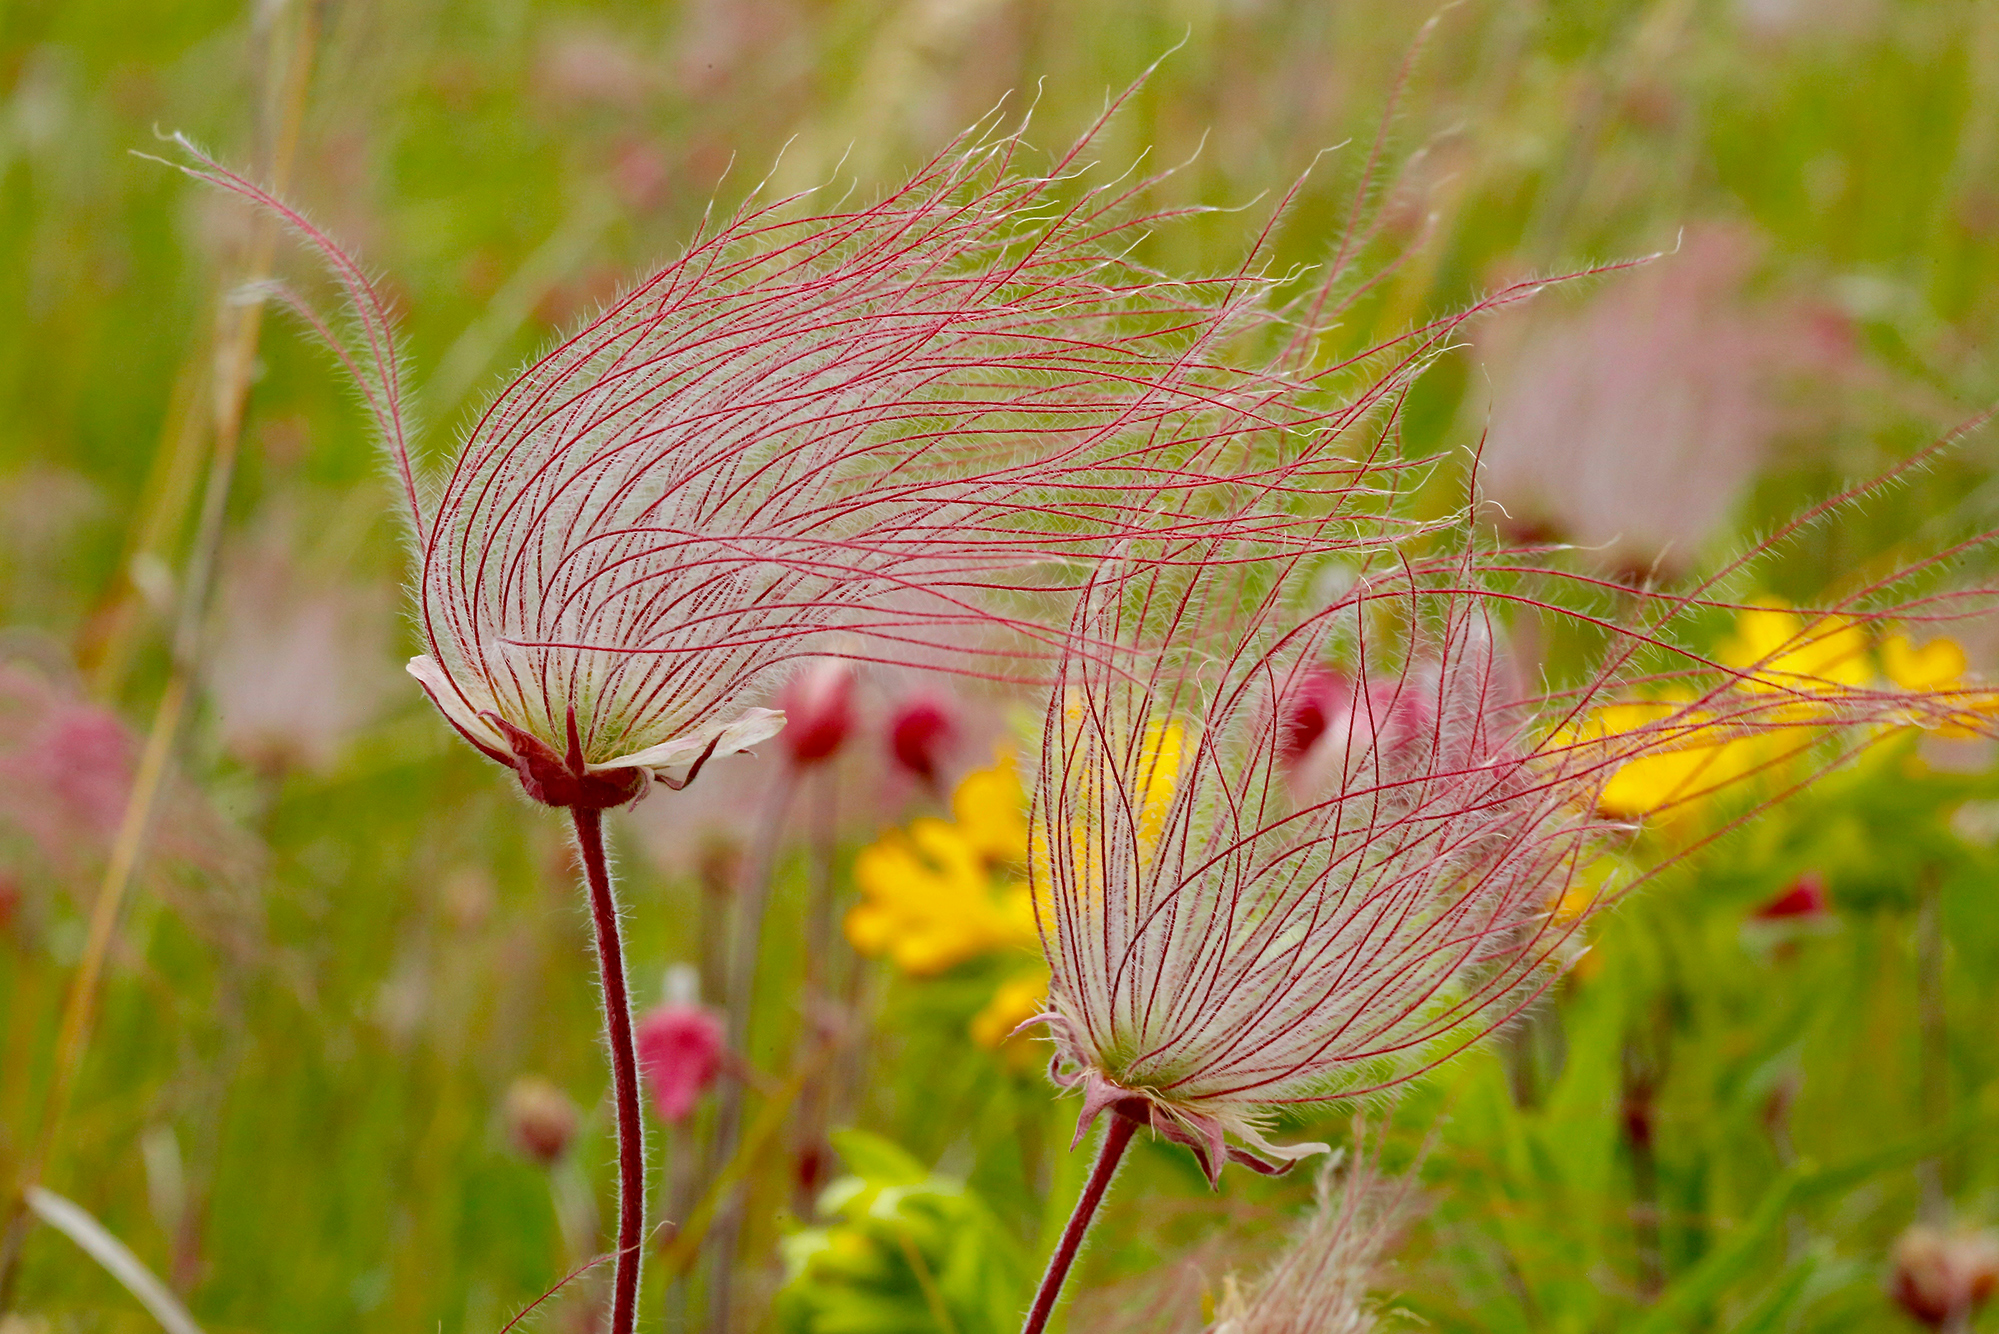 wispy pink threads of a plant blowing in the wind